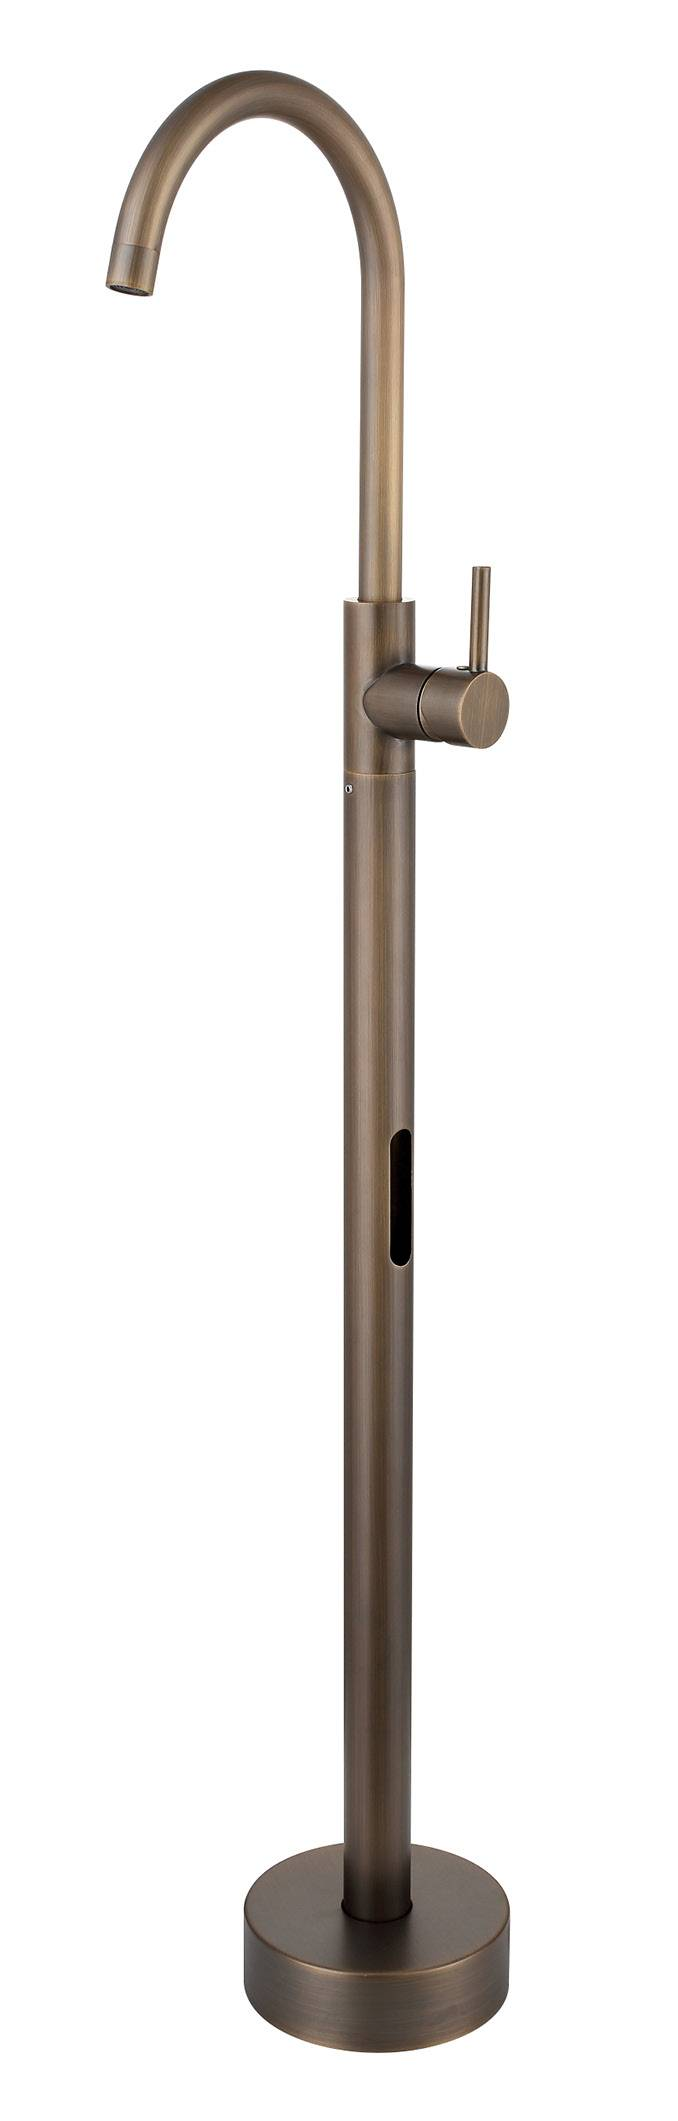 Solid Brass Antique Floor Standing Pedestal Basin Faucet- Antique Brass Finish